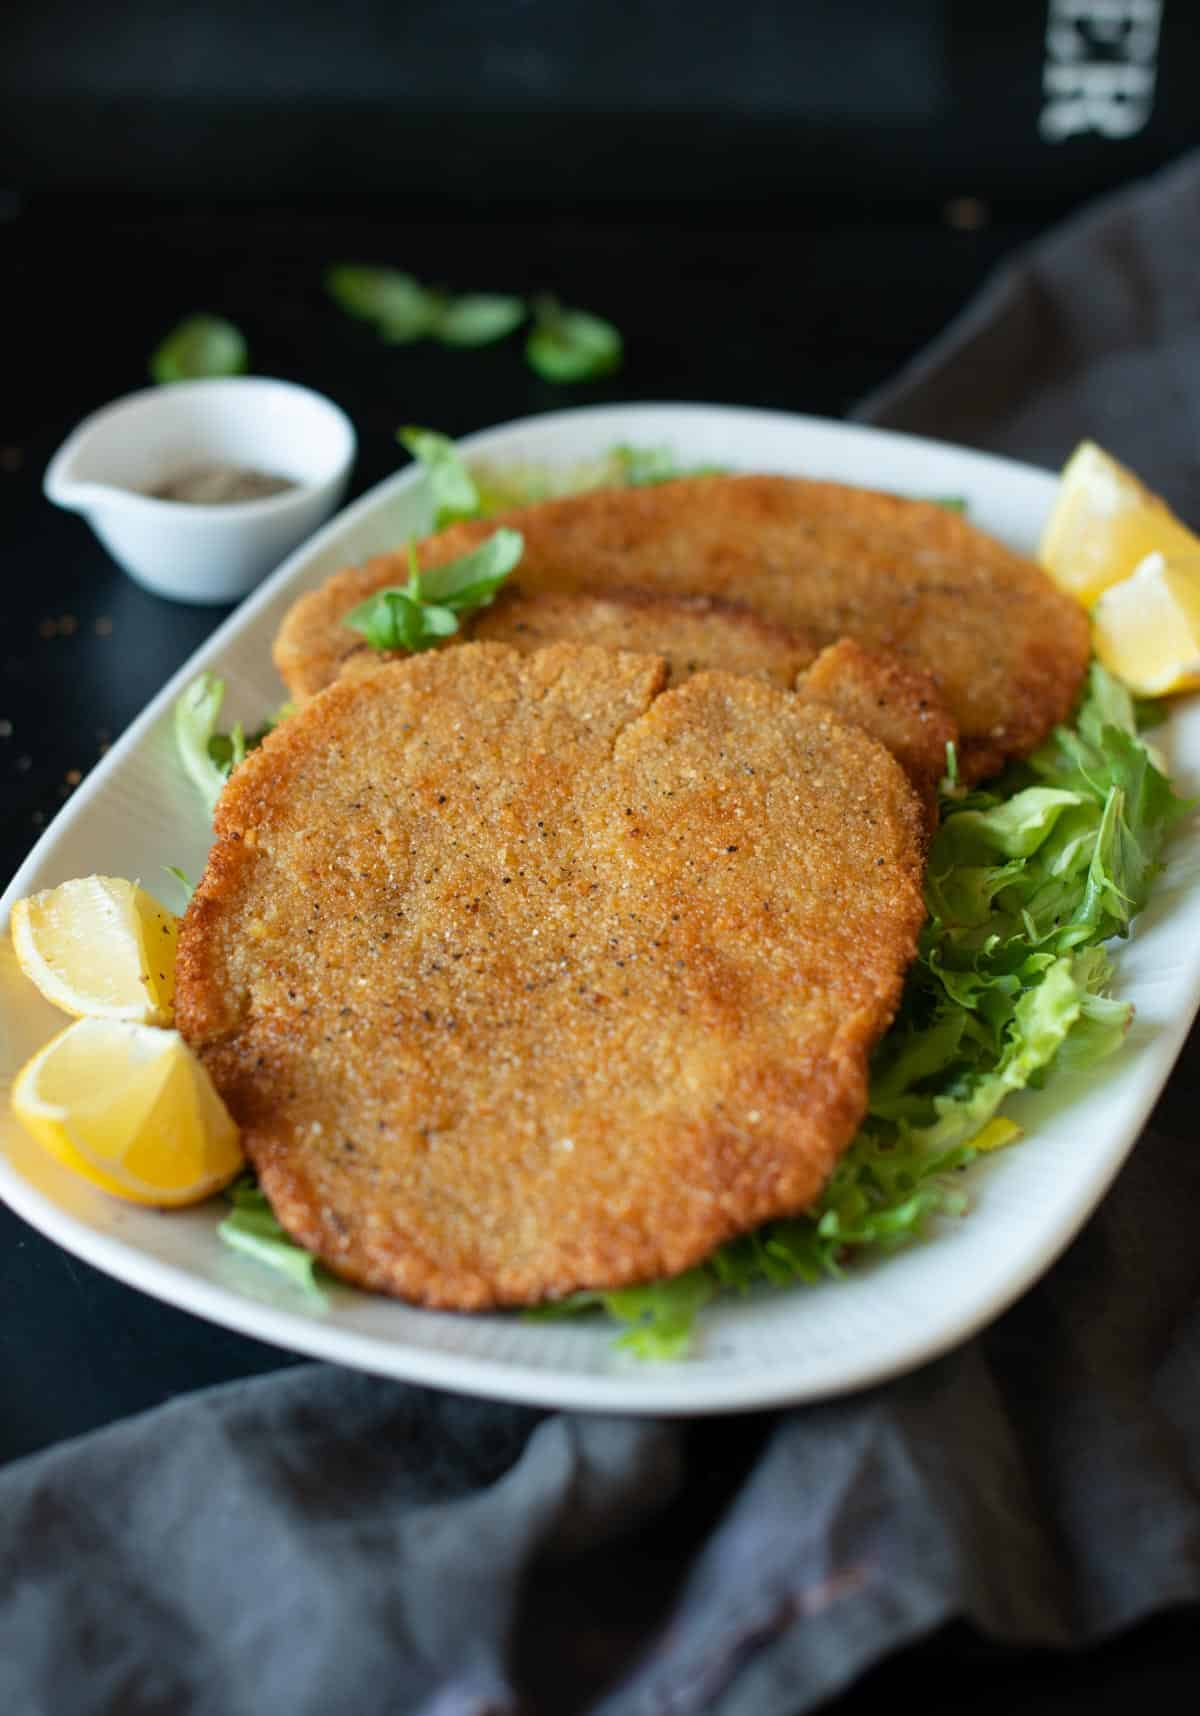 Image of the chickpea cutlets